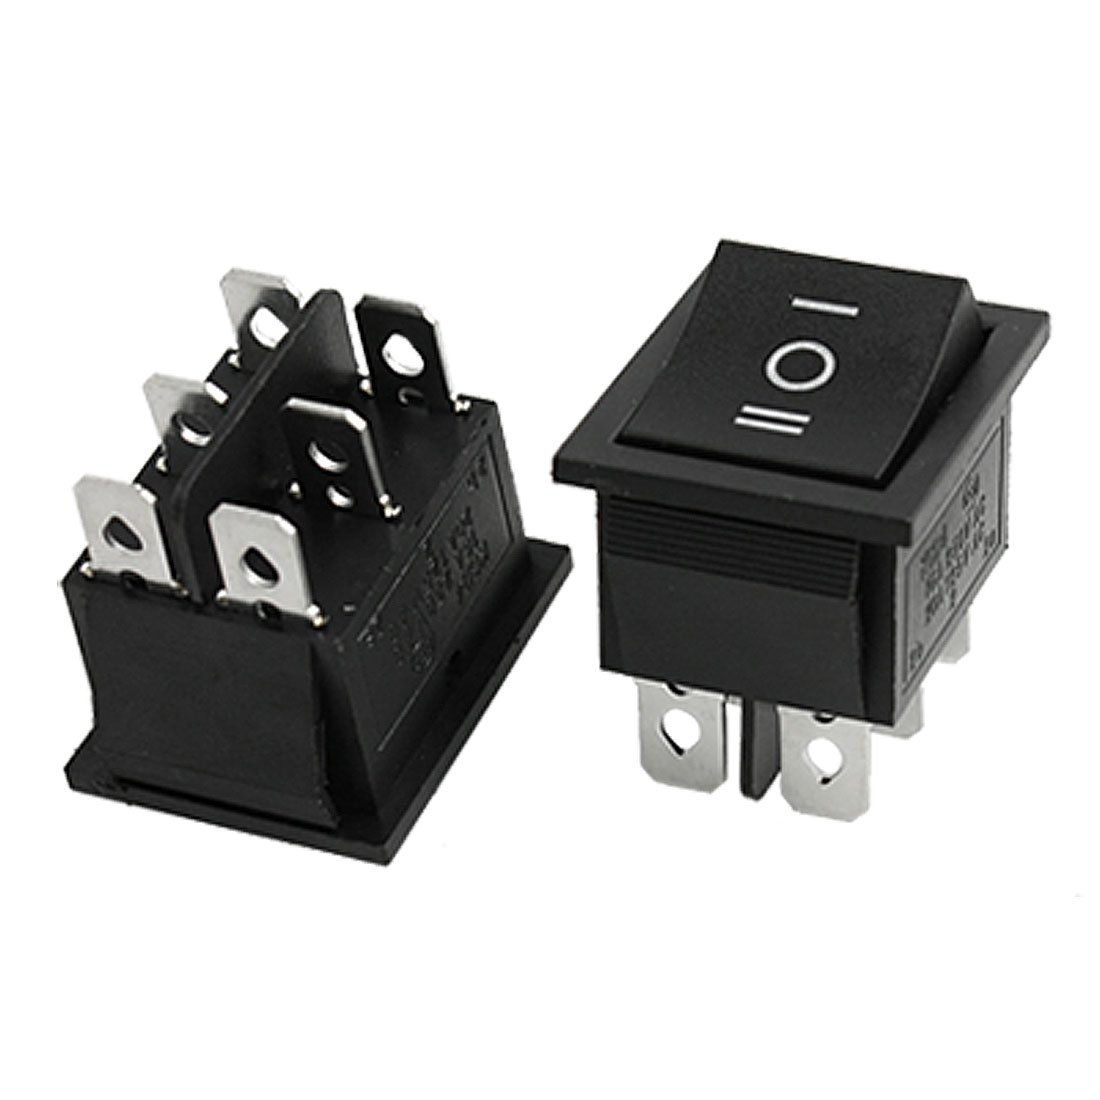 2pcs 6 Pin DPDT ON OFF ON 3 Position Snap in Rocker Switch 15A 250V 20A